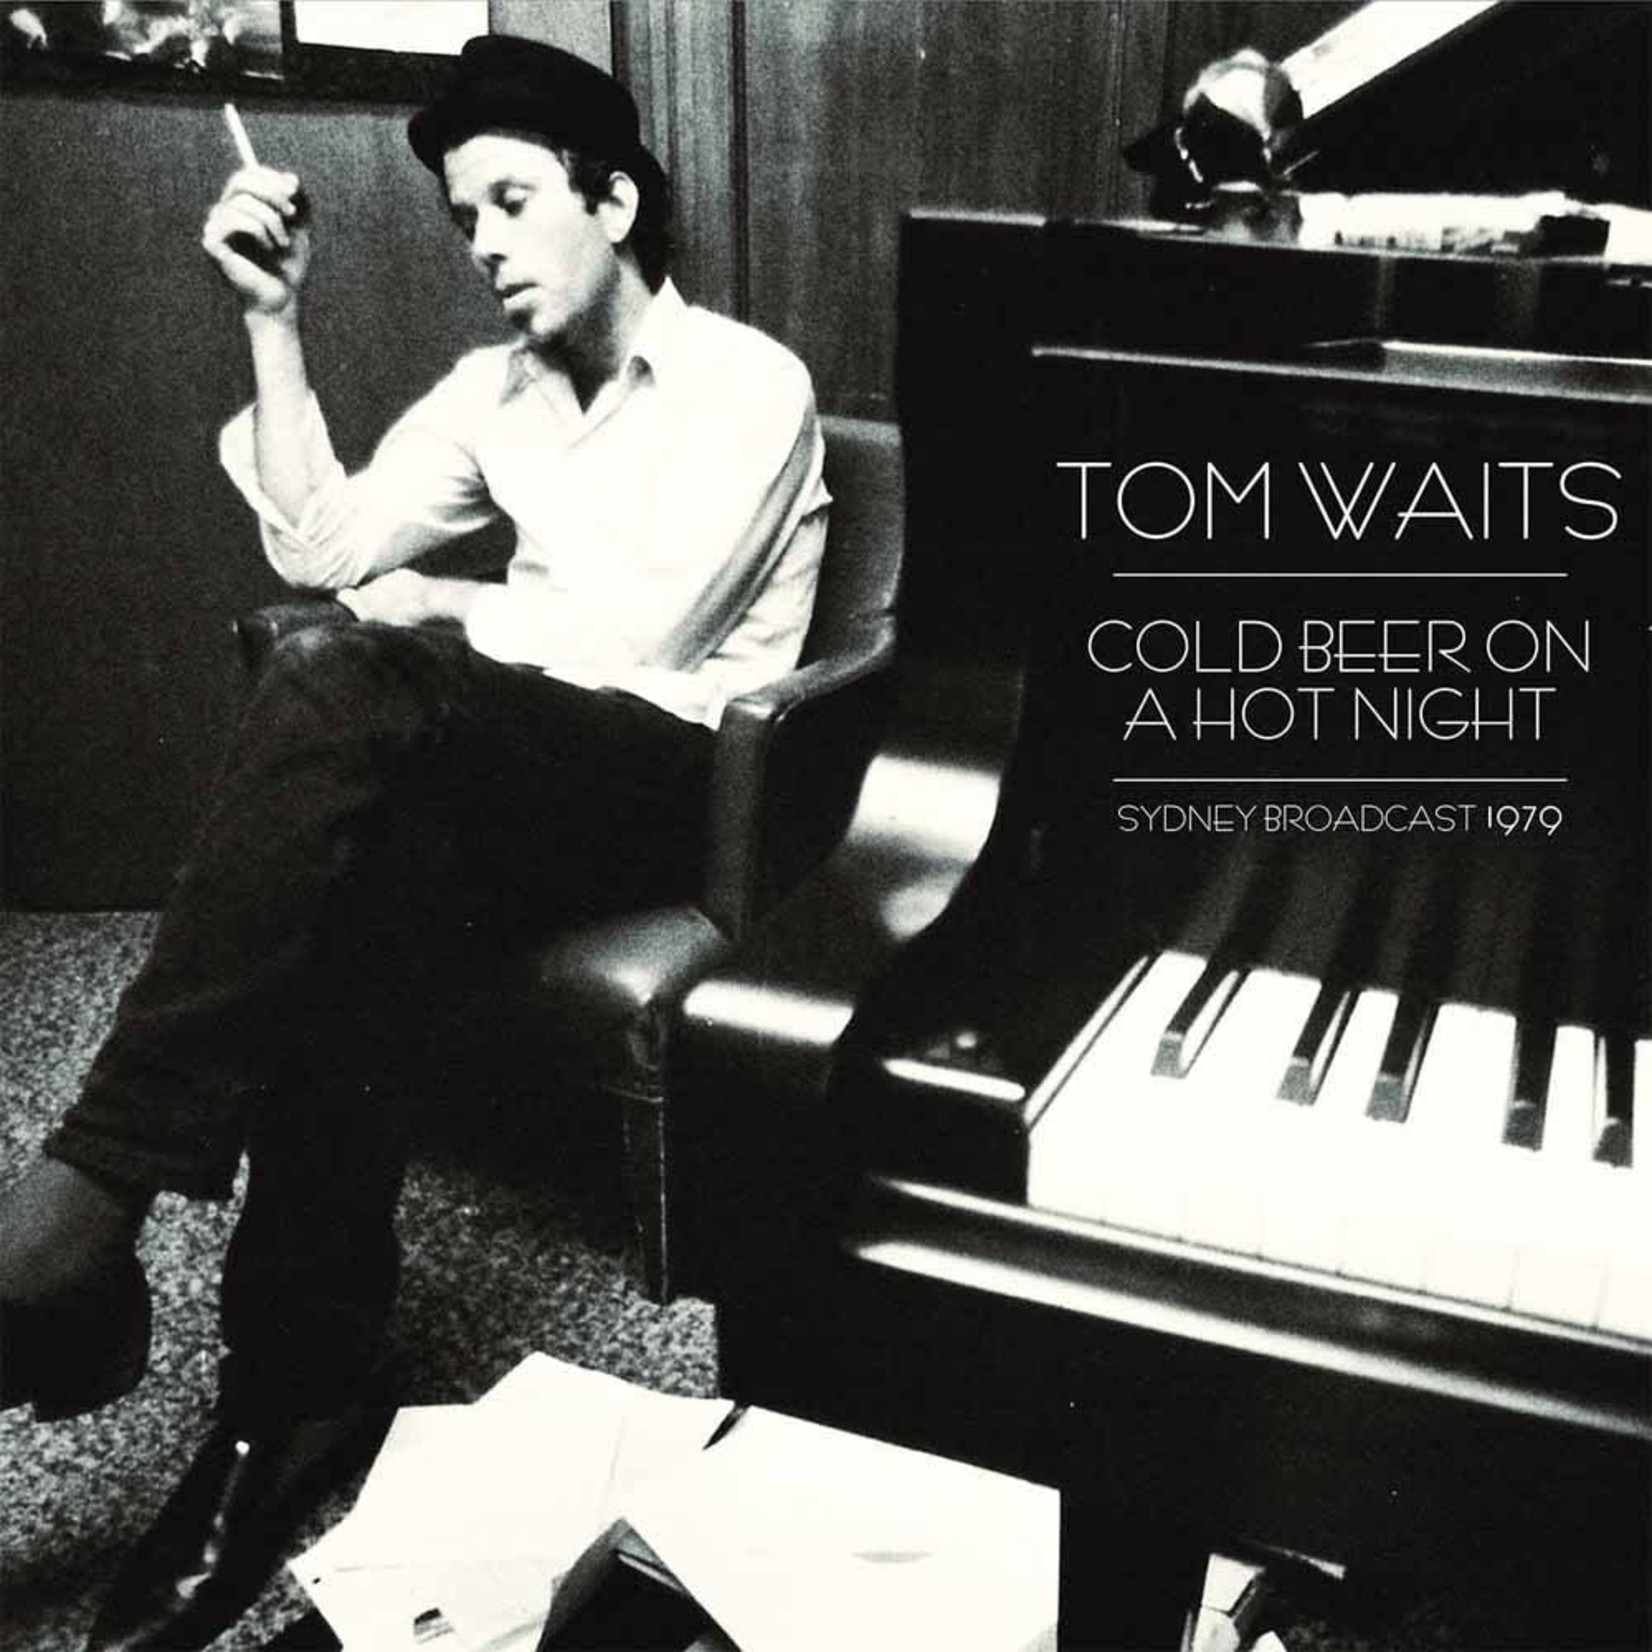 TOM WAITS COLD BEER ON A HOT NIGHT